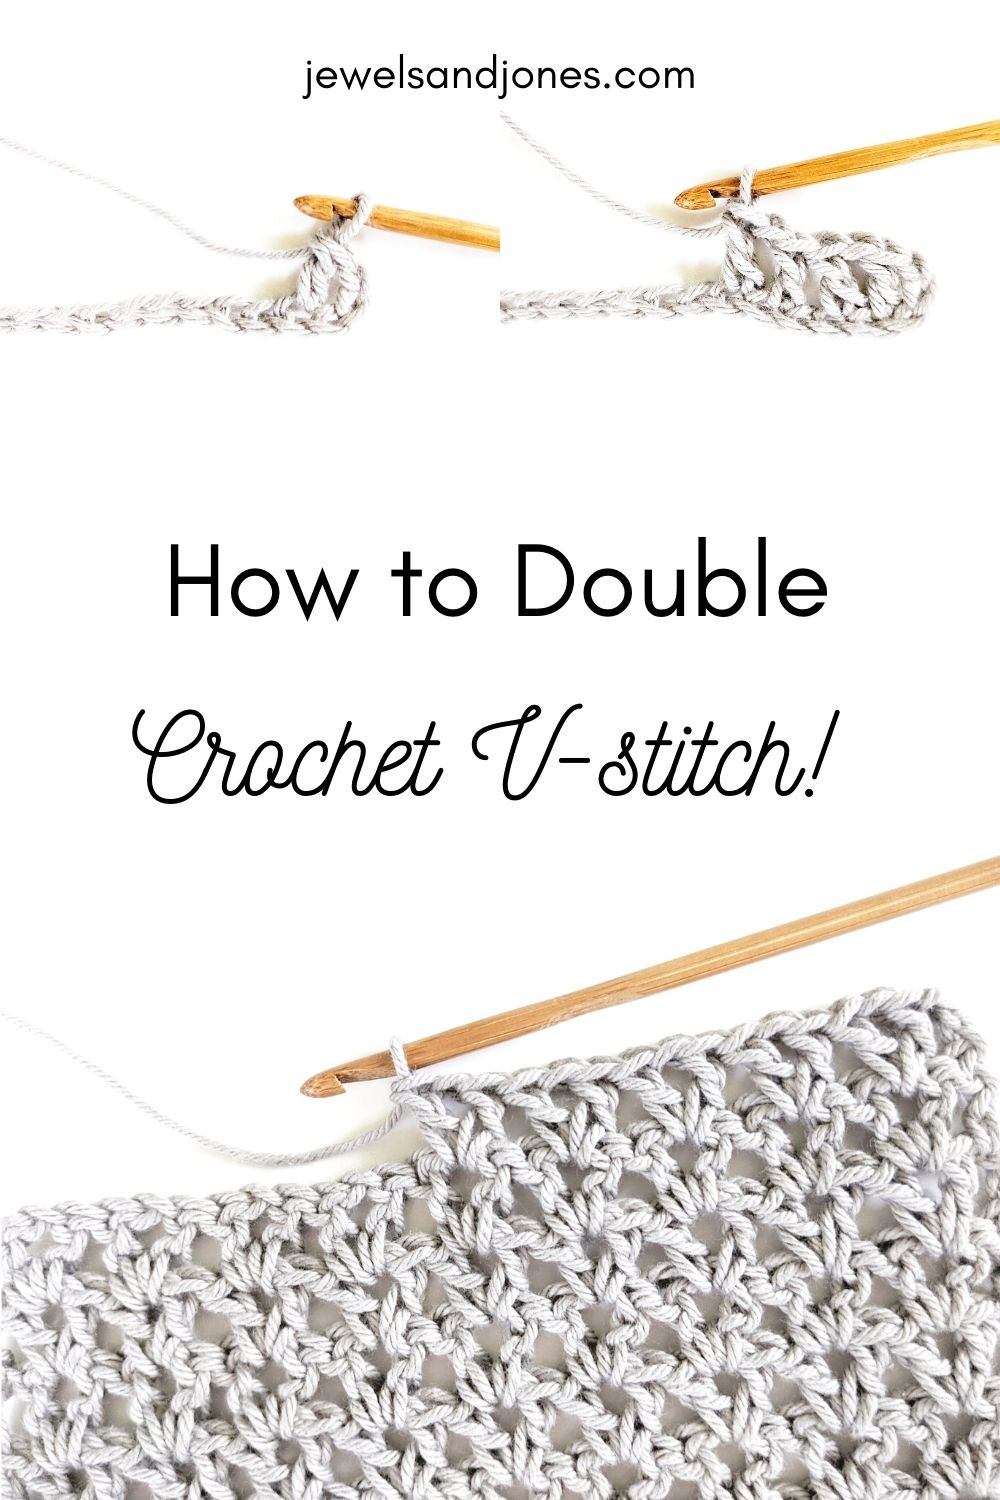 pinnable image shows a swatch of a crochet double v-stitch